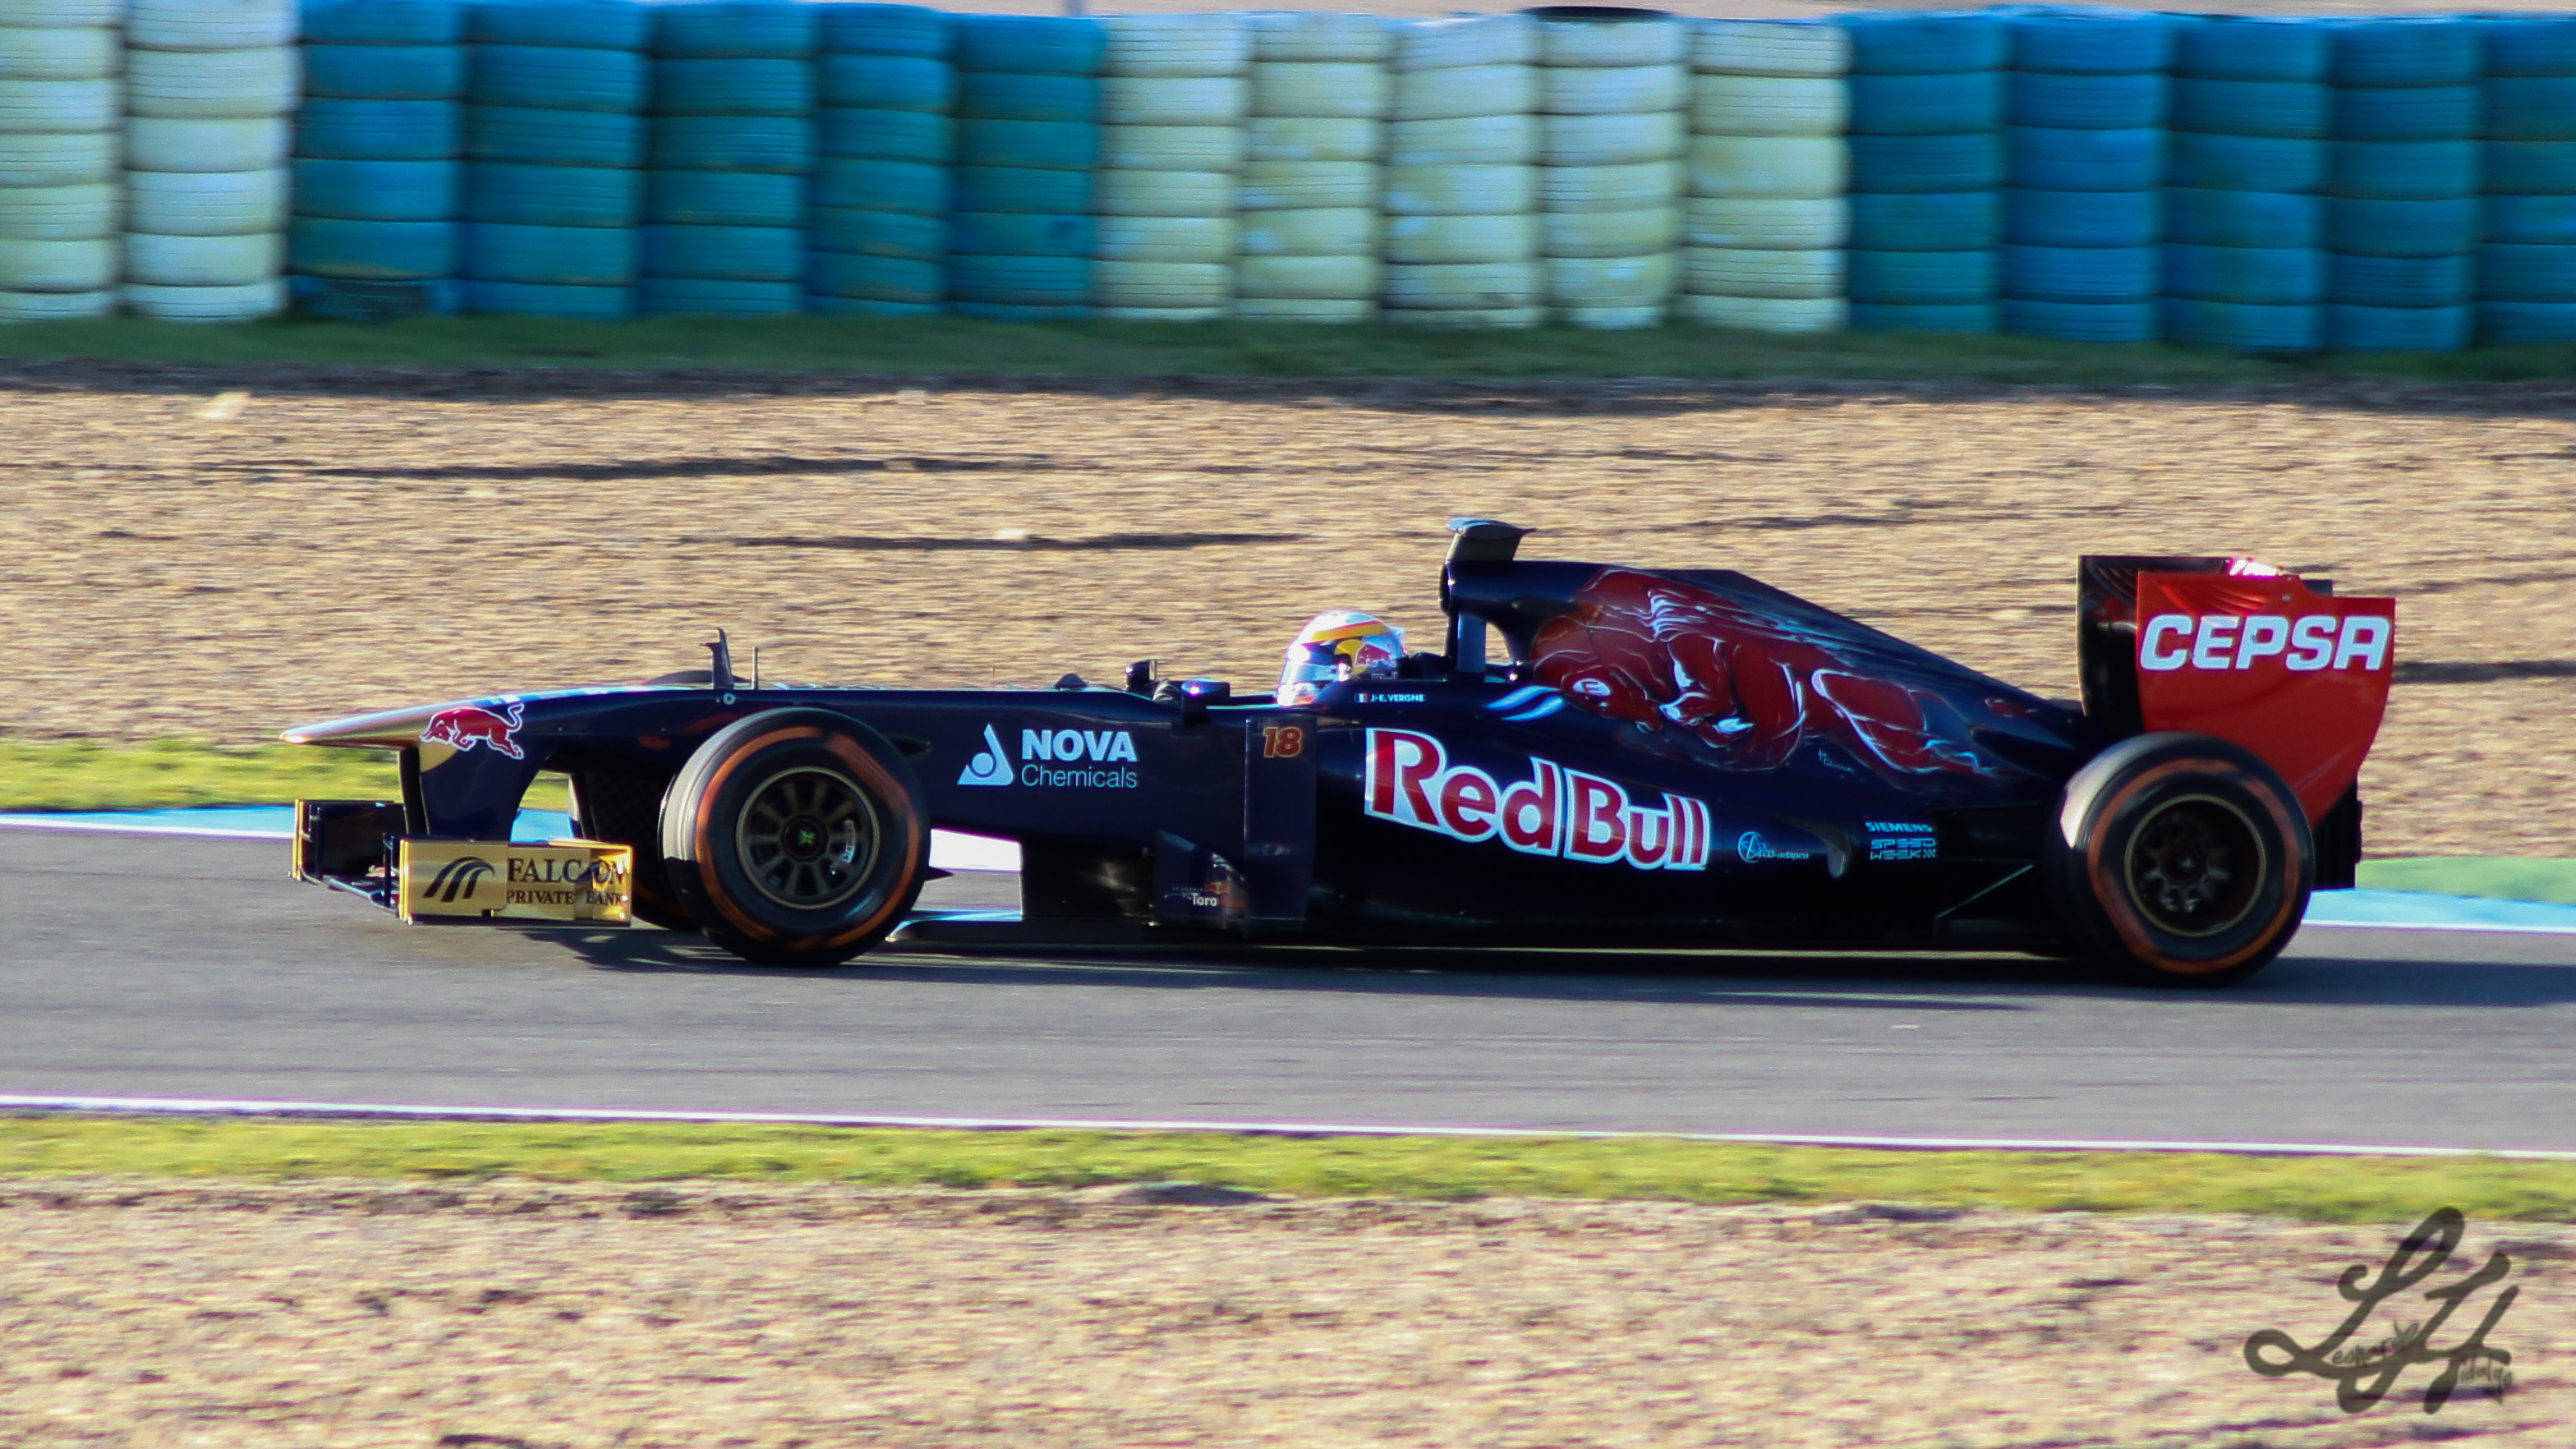 Description F1 2013 Jerez test - Toro Rosso.jpg